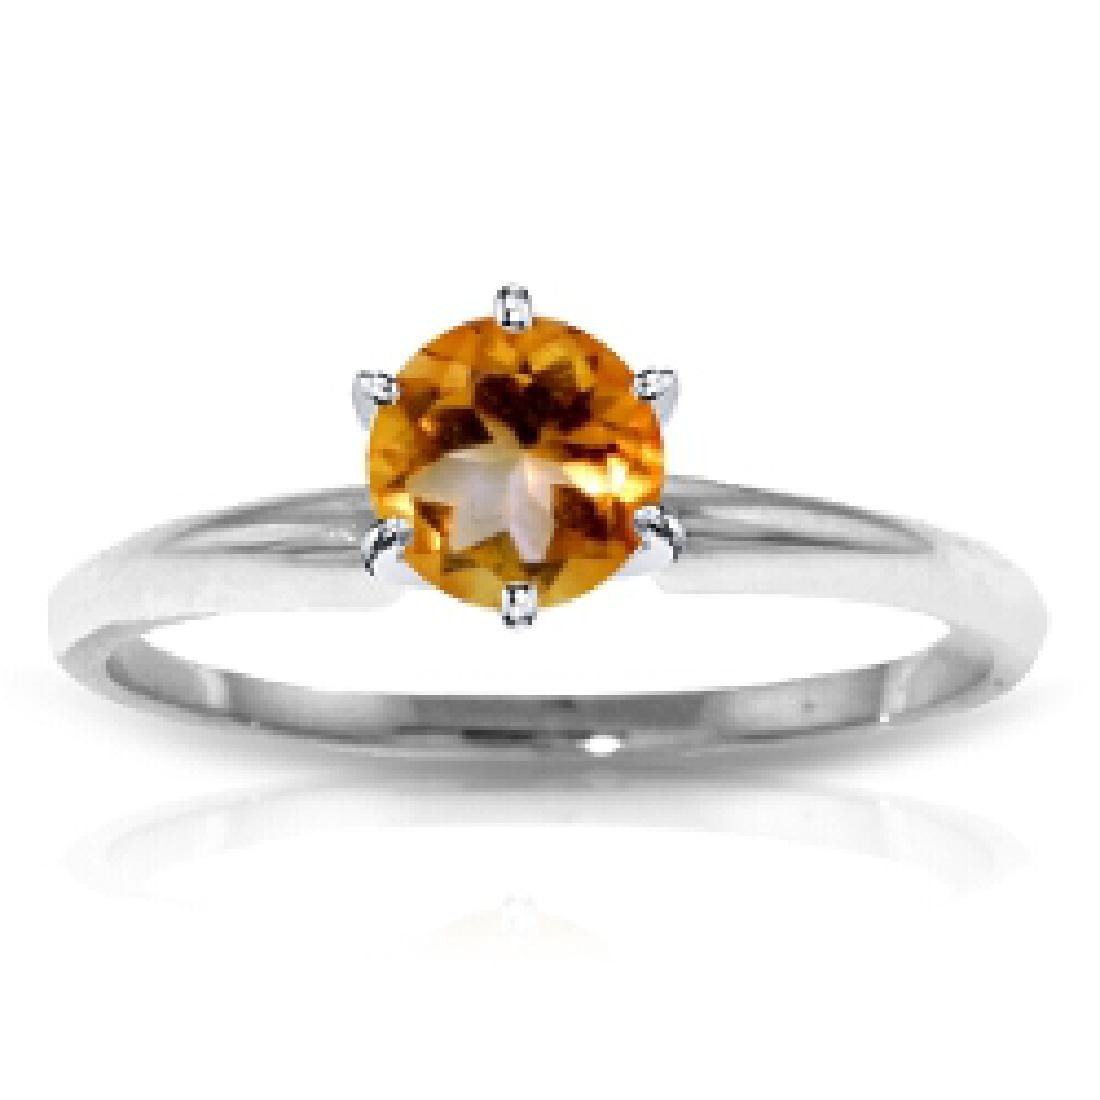 CERTIFIED 14K 1.85 CTW CITRINE SOLITAIRE RING